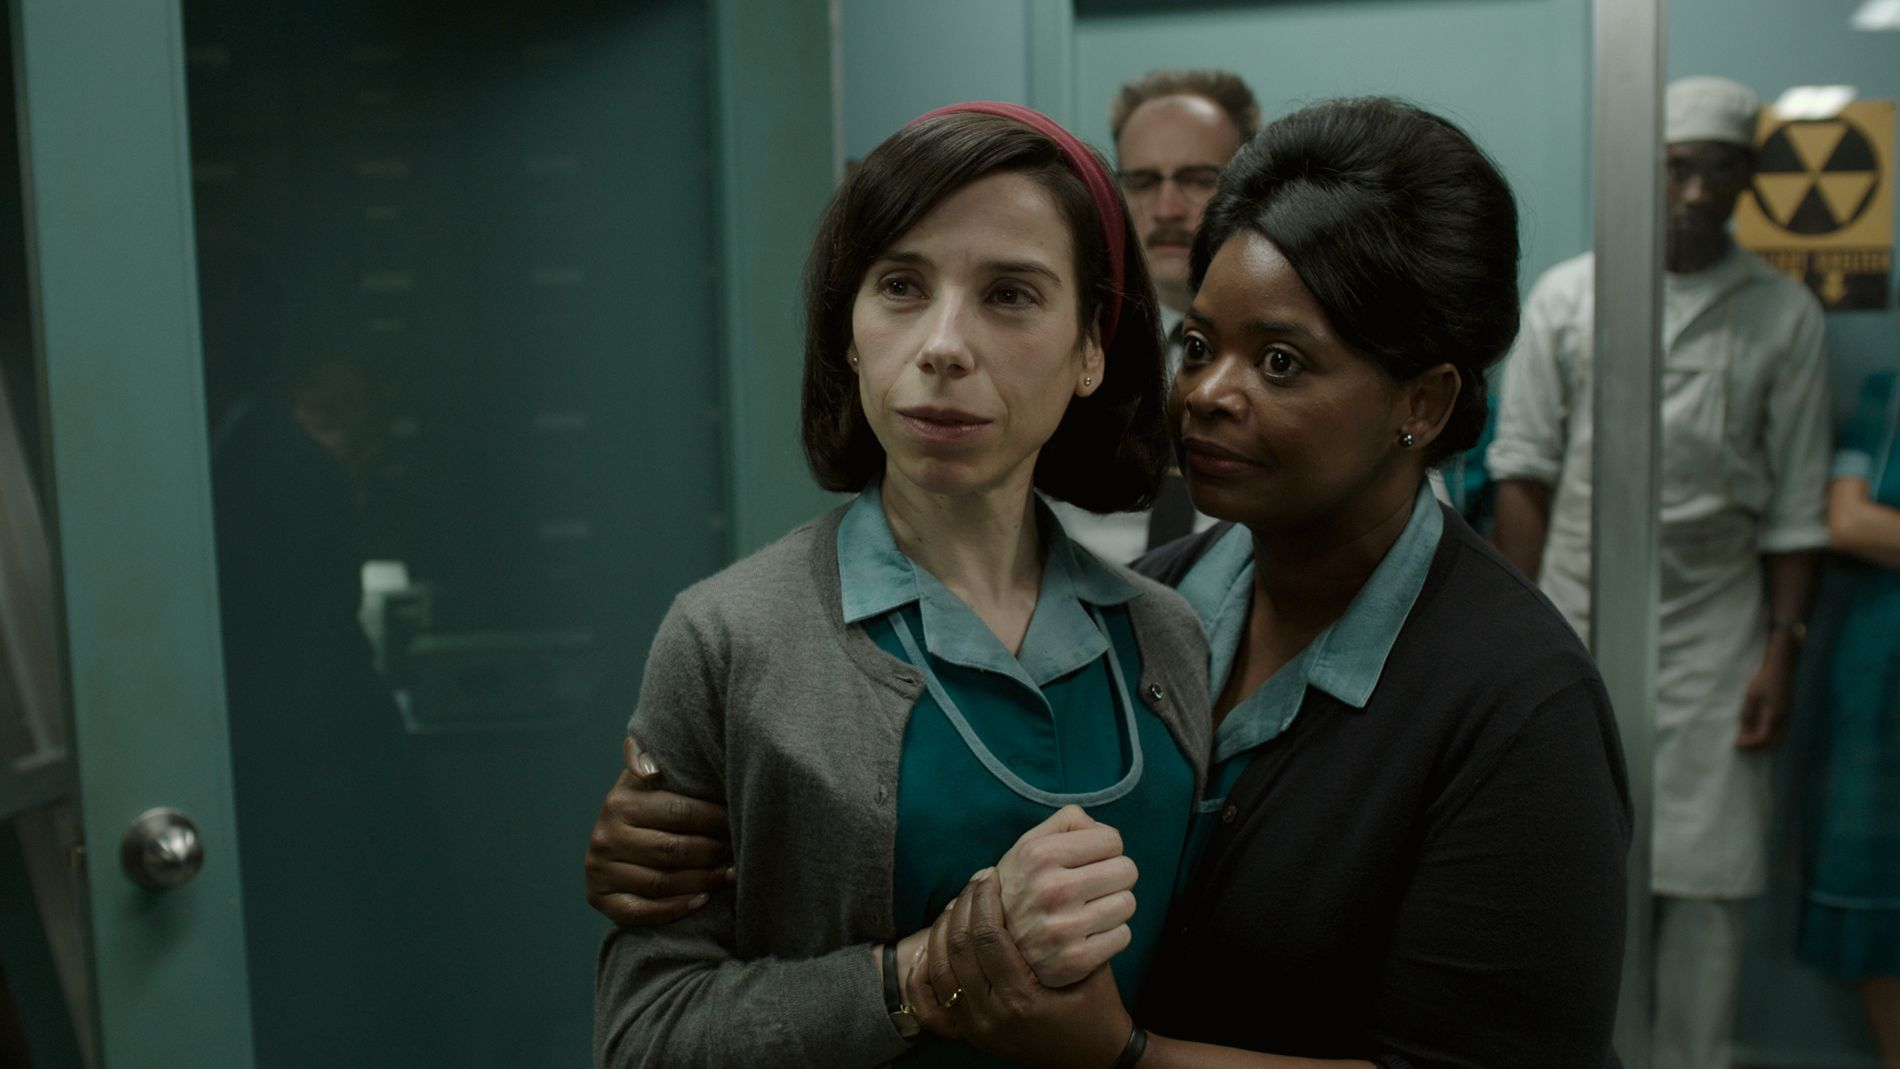 KOMMER TIL NORGE: Sally Hawkins og Ocatavia Spencer i «The Shape of Water»